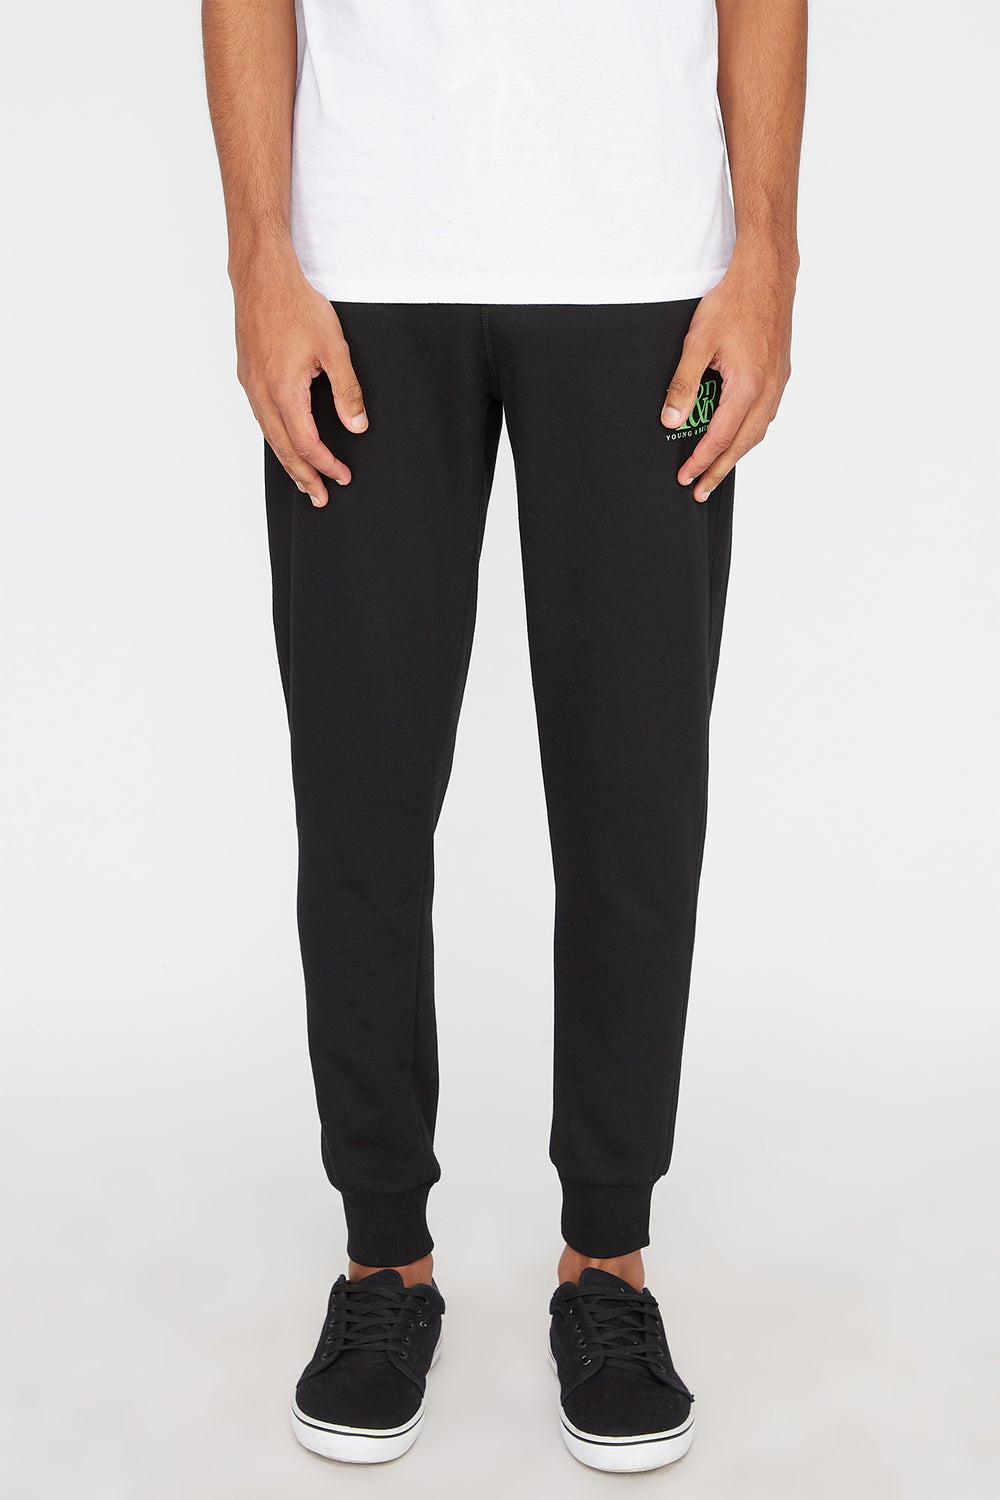 Young & Reckless Mens Neon Accent Joggers Black